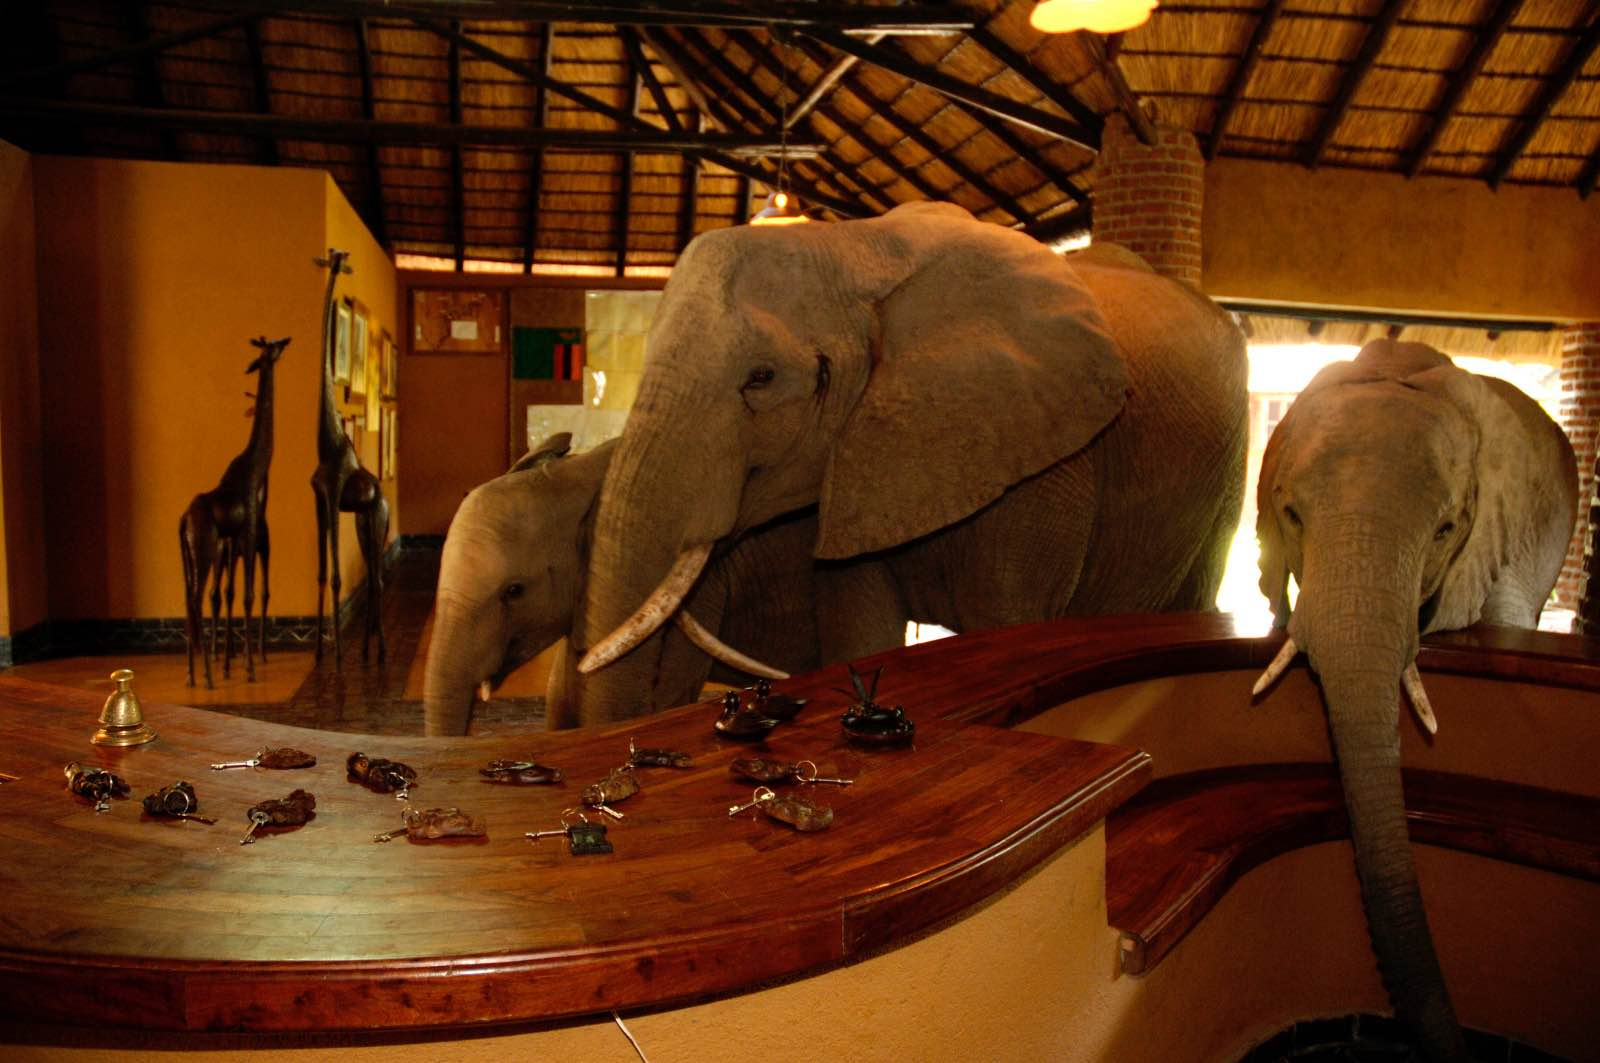 The herd of elephants moves through tje reception area of Mfuwe Lodge on their way to find the wild mango tree on the other side